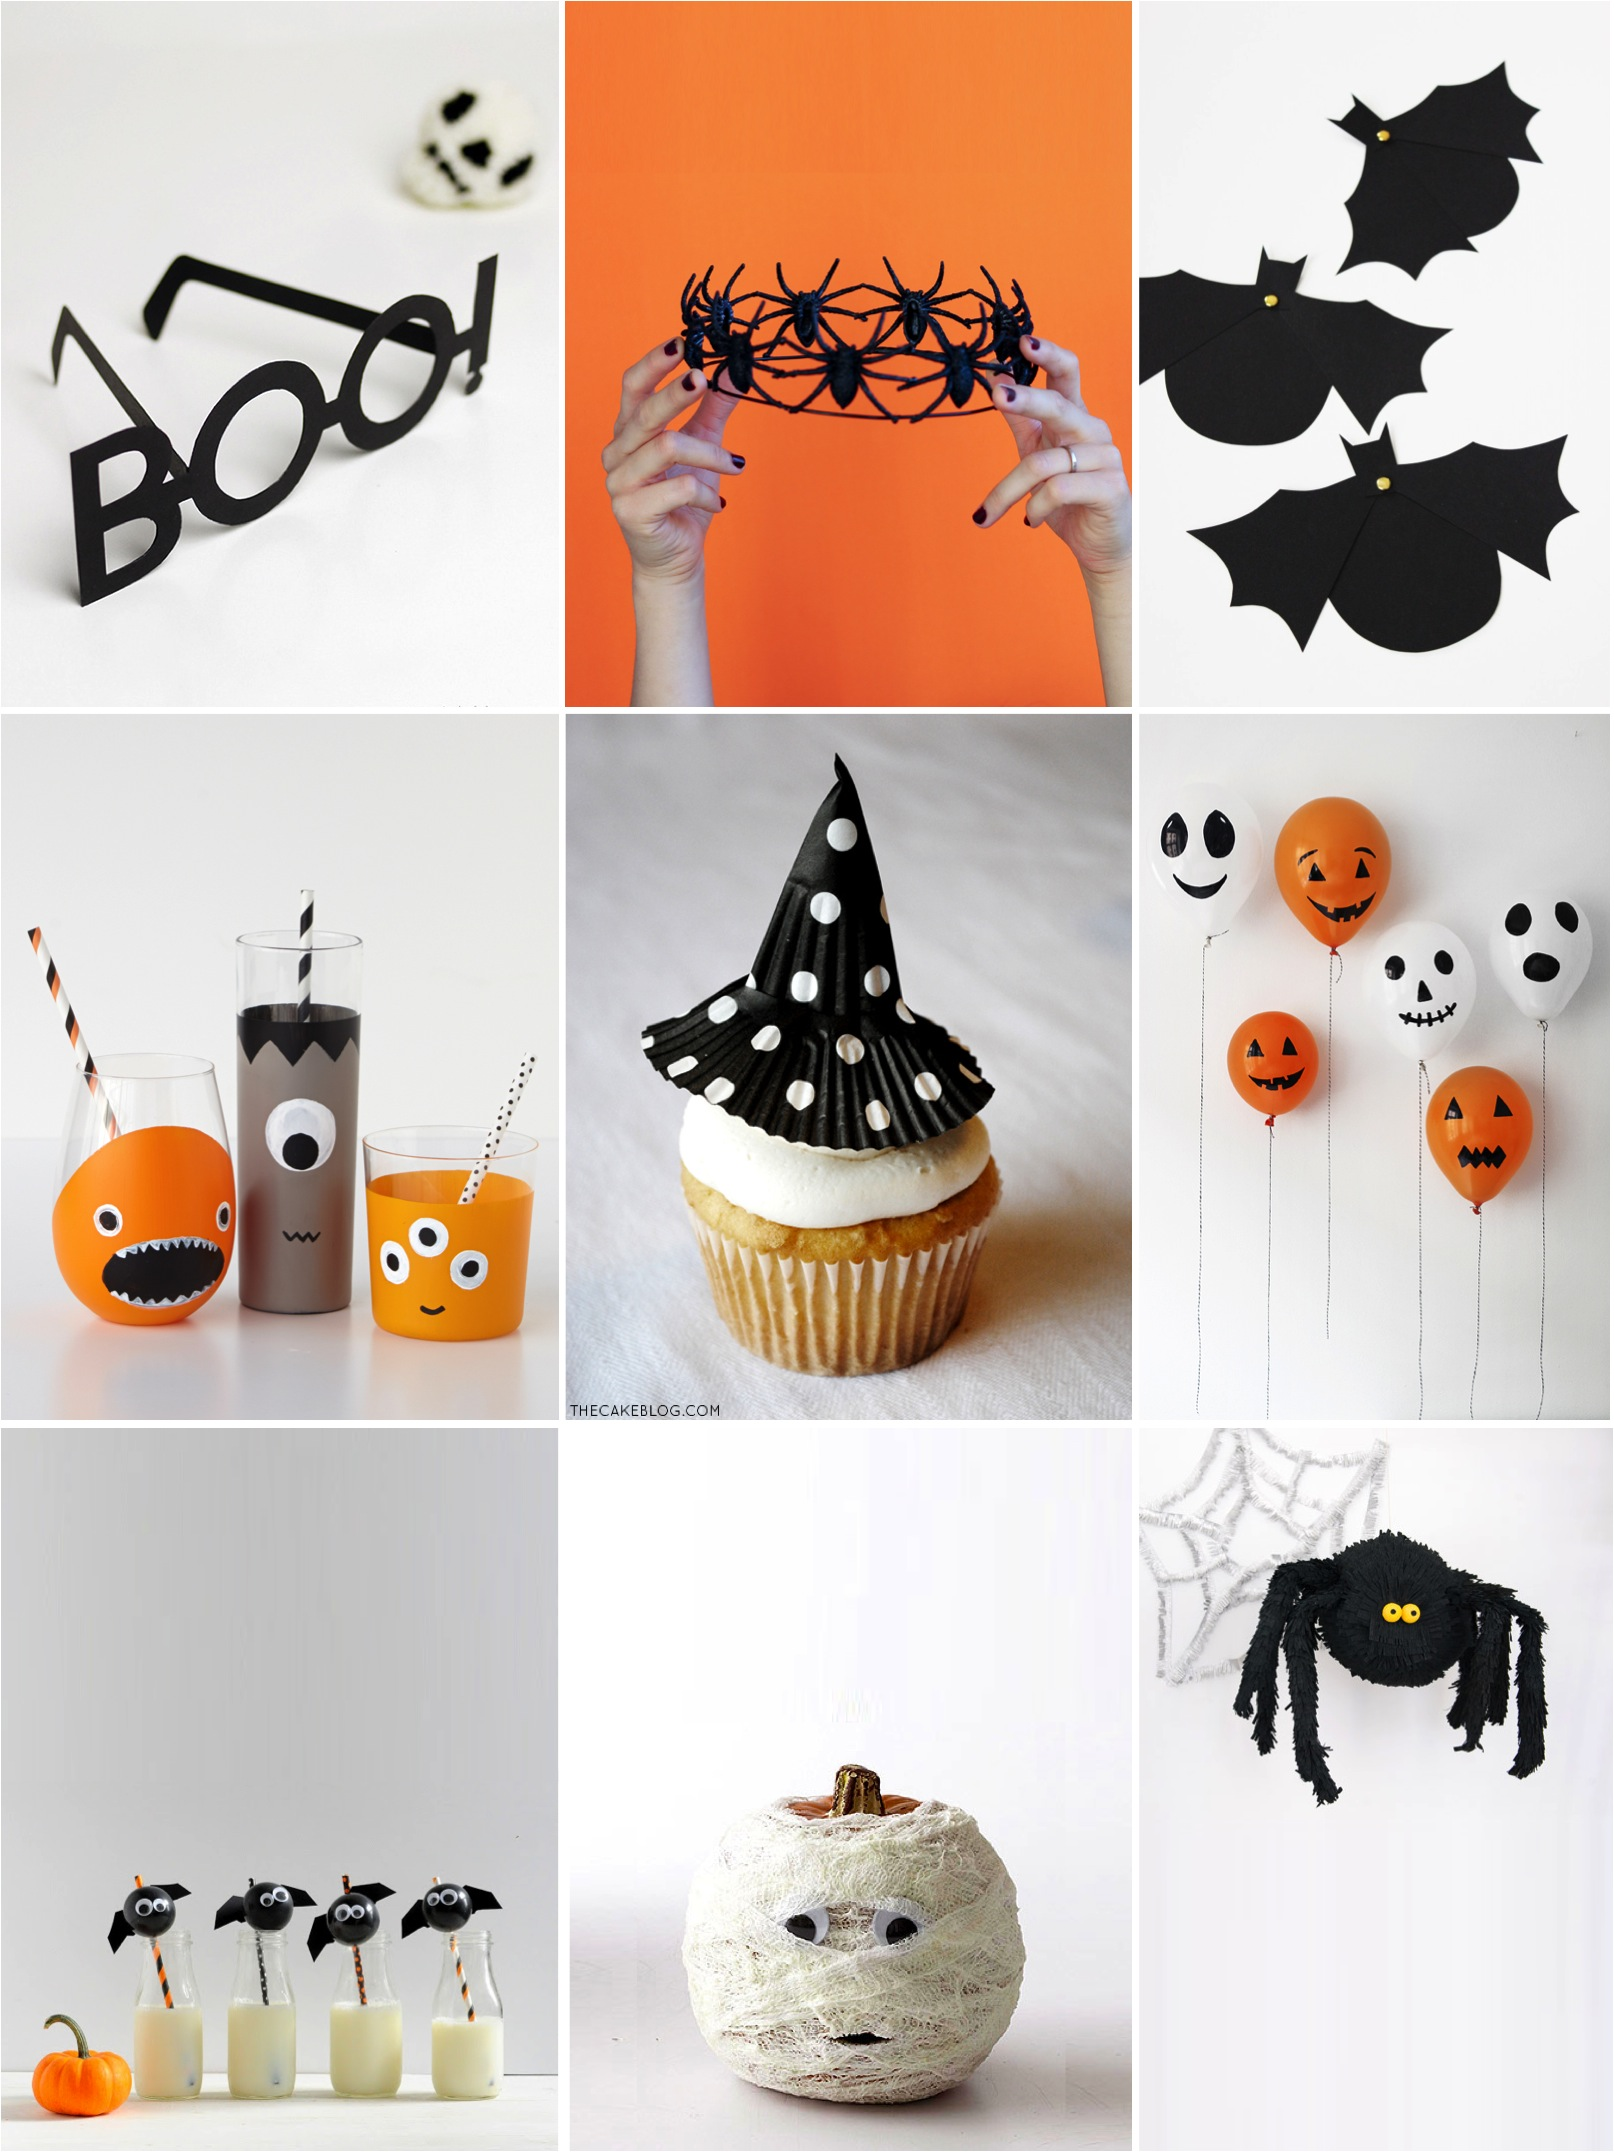 9 Easy Party Decorations to Make this Halloween - Petit & Small